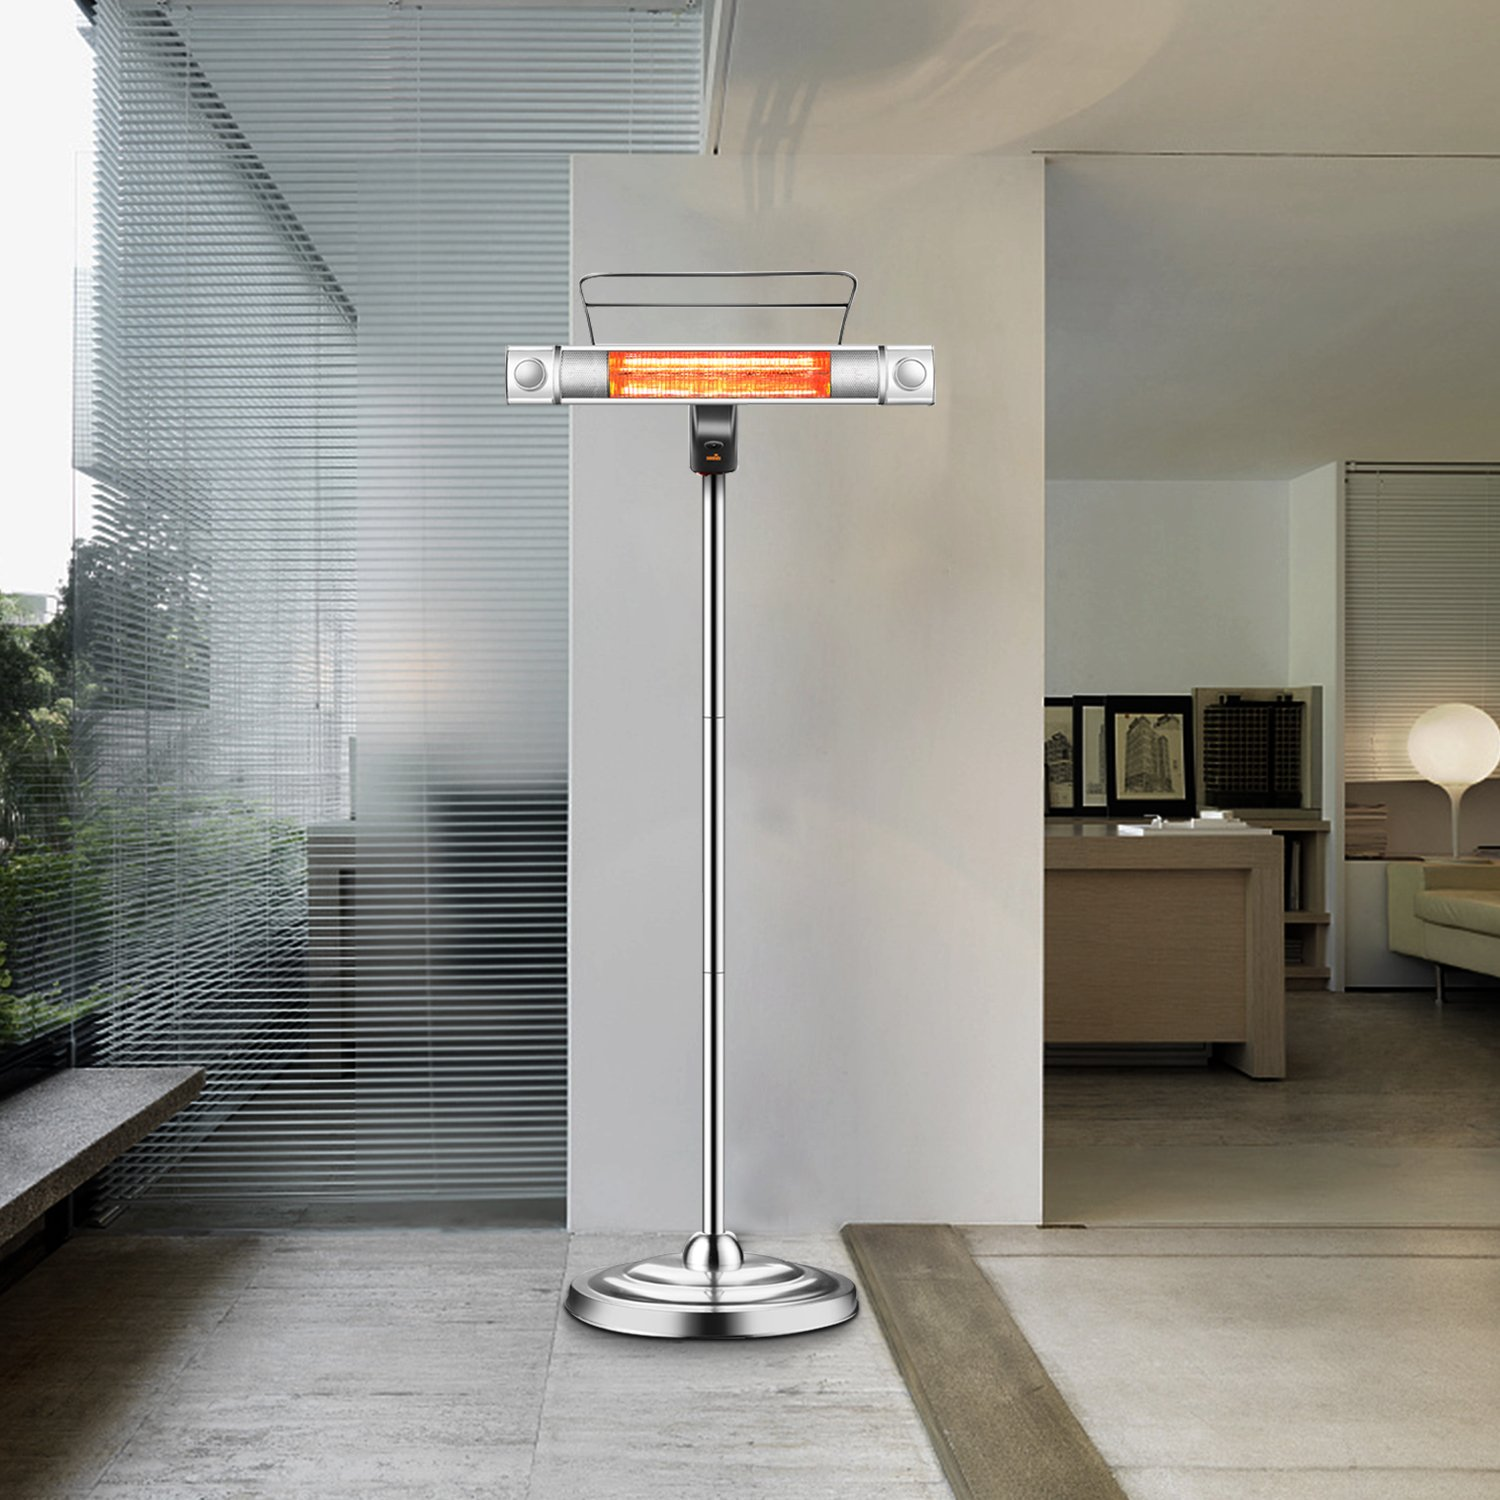 Sundate Electric Patio Heater, Infrared Heater with 2 LED Lights and Remote Control, Indoor/Outdoor Standing Heater, TH15LR